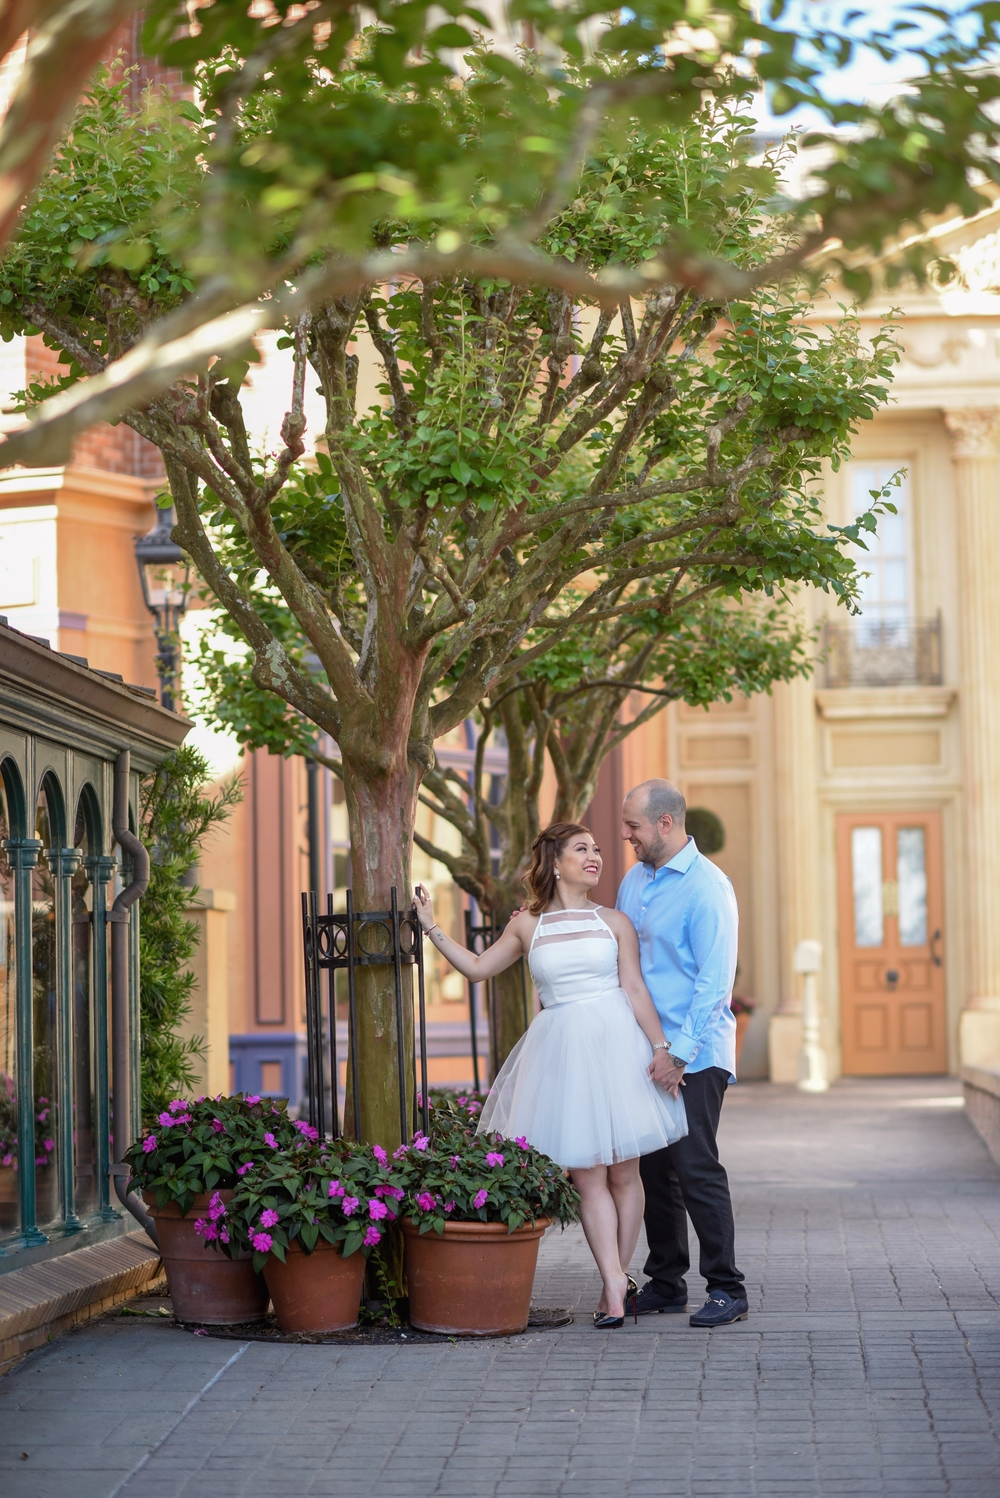 risa xu epcot engagement shoot france walt disney world